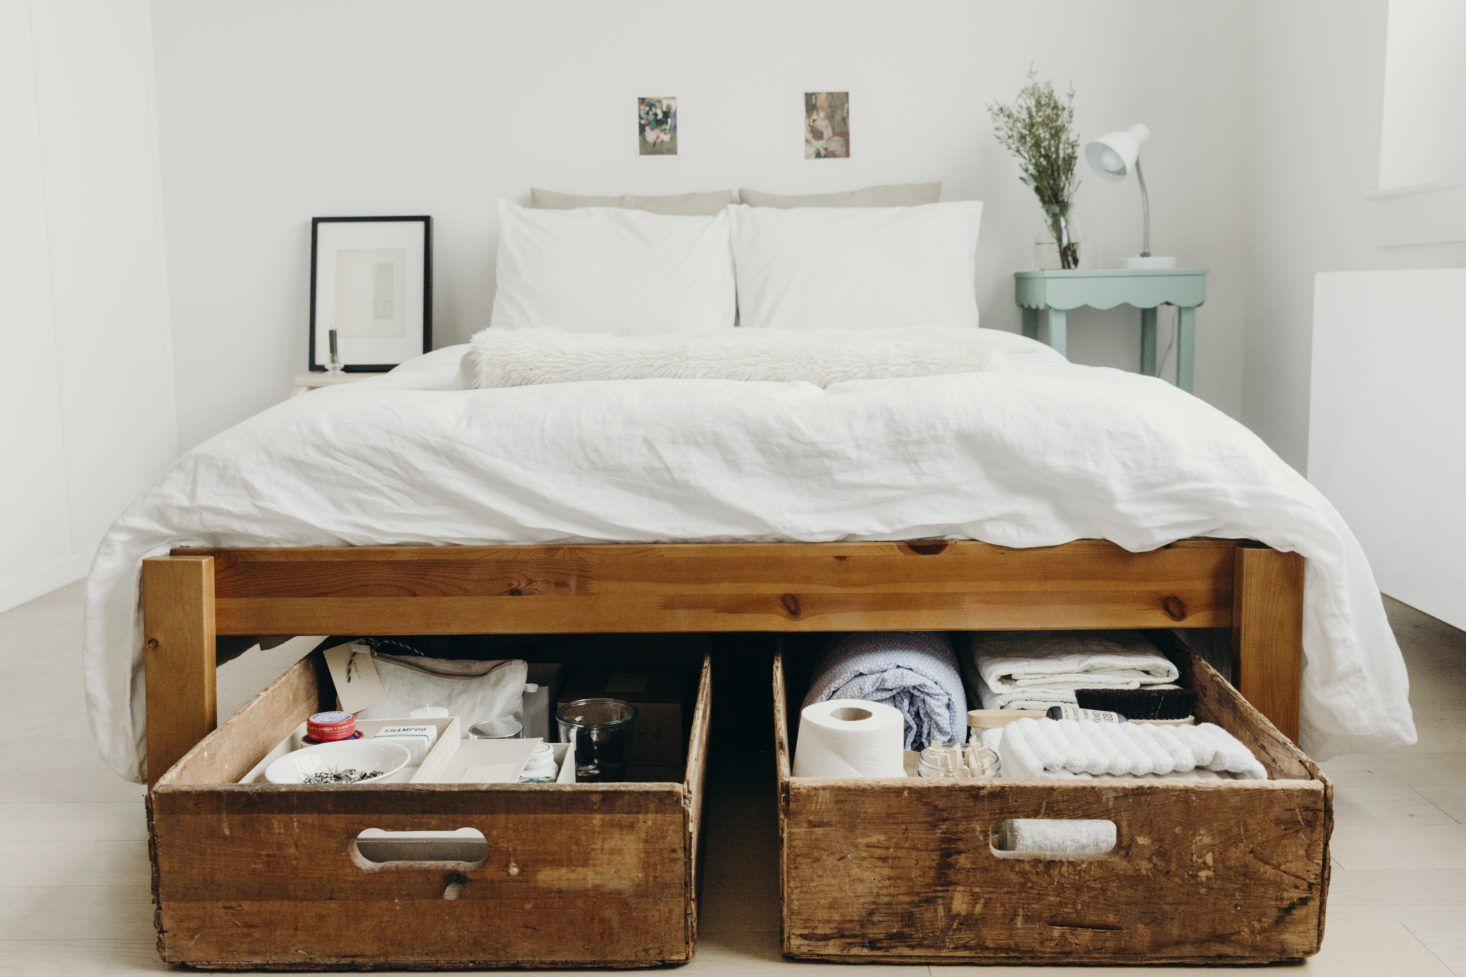 Trending On The Organized Home Small Space Living Minimalist